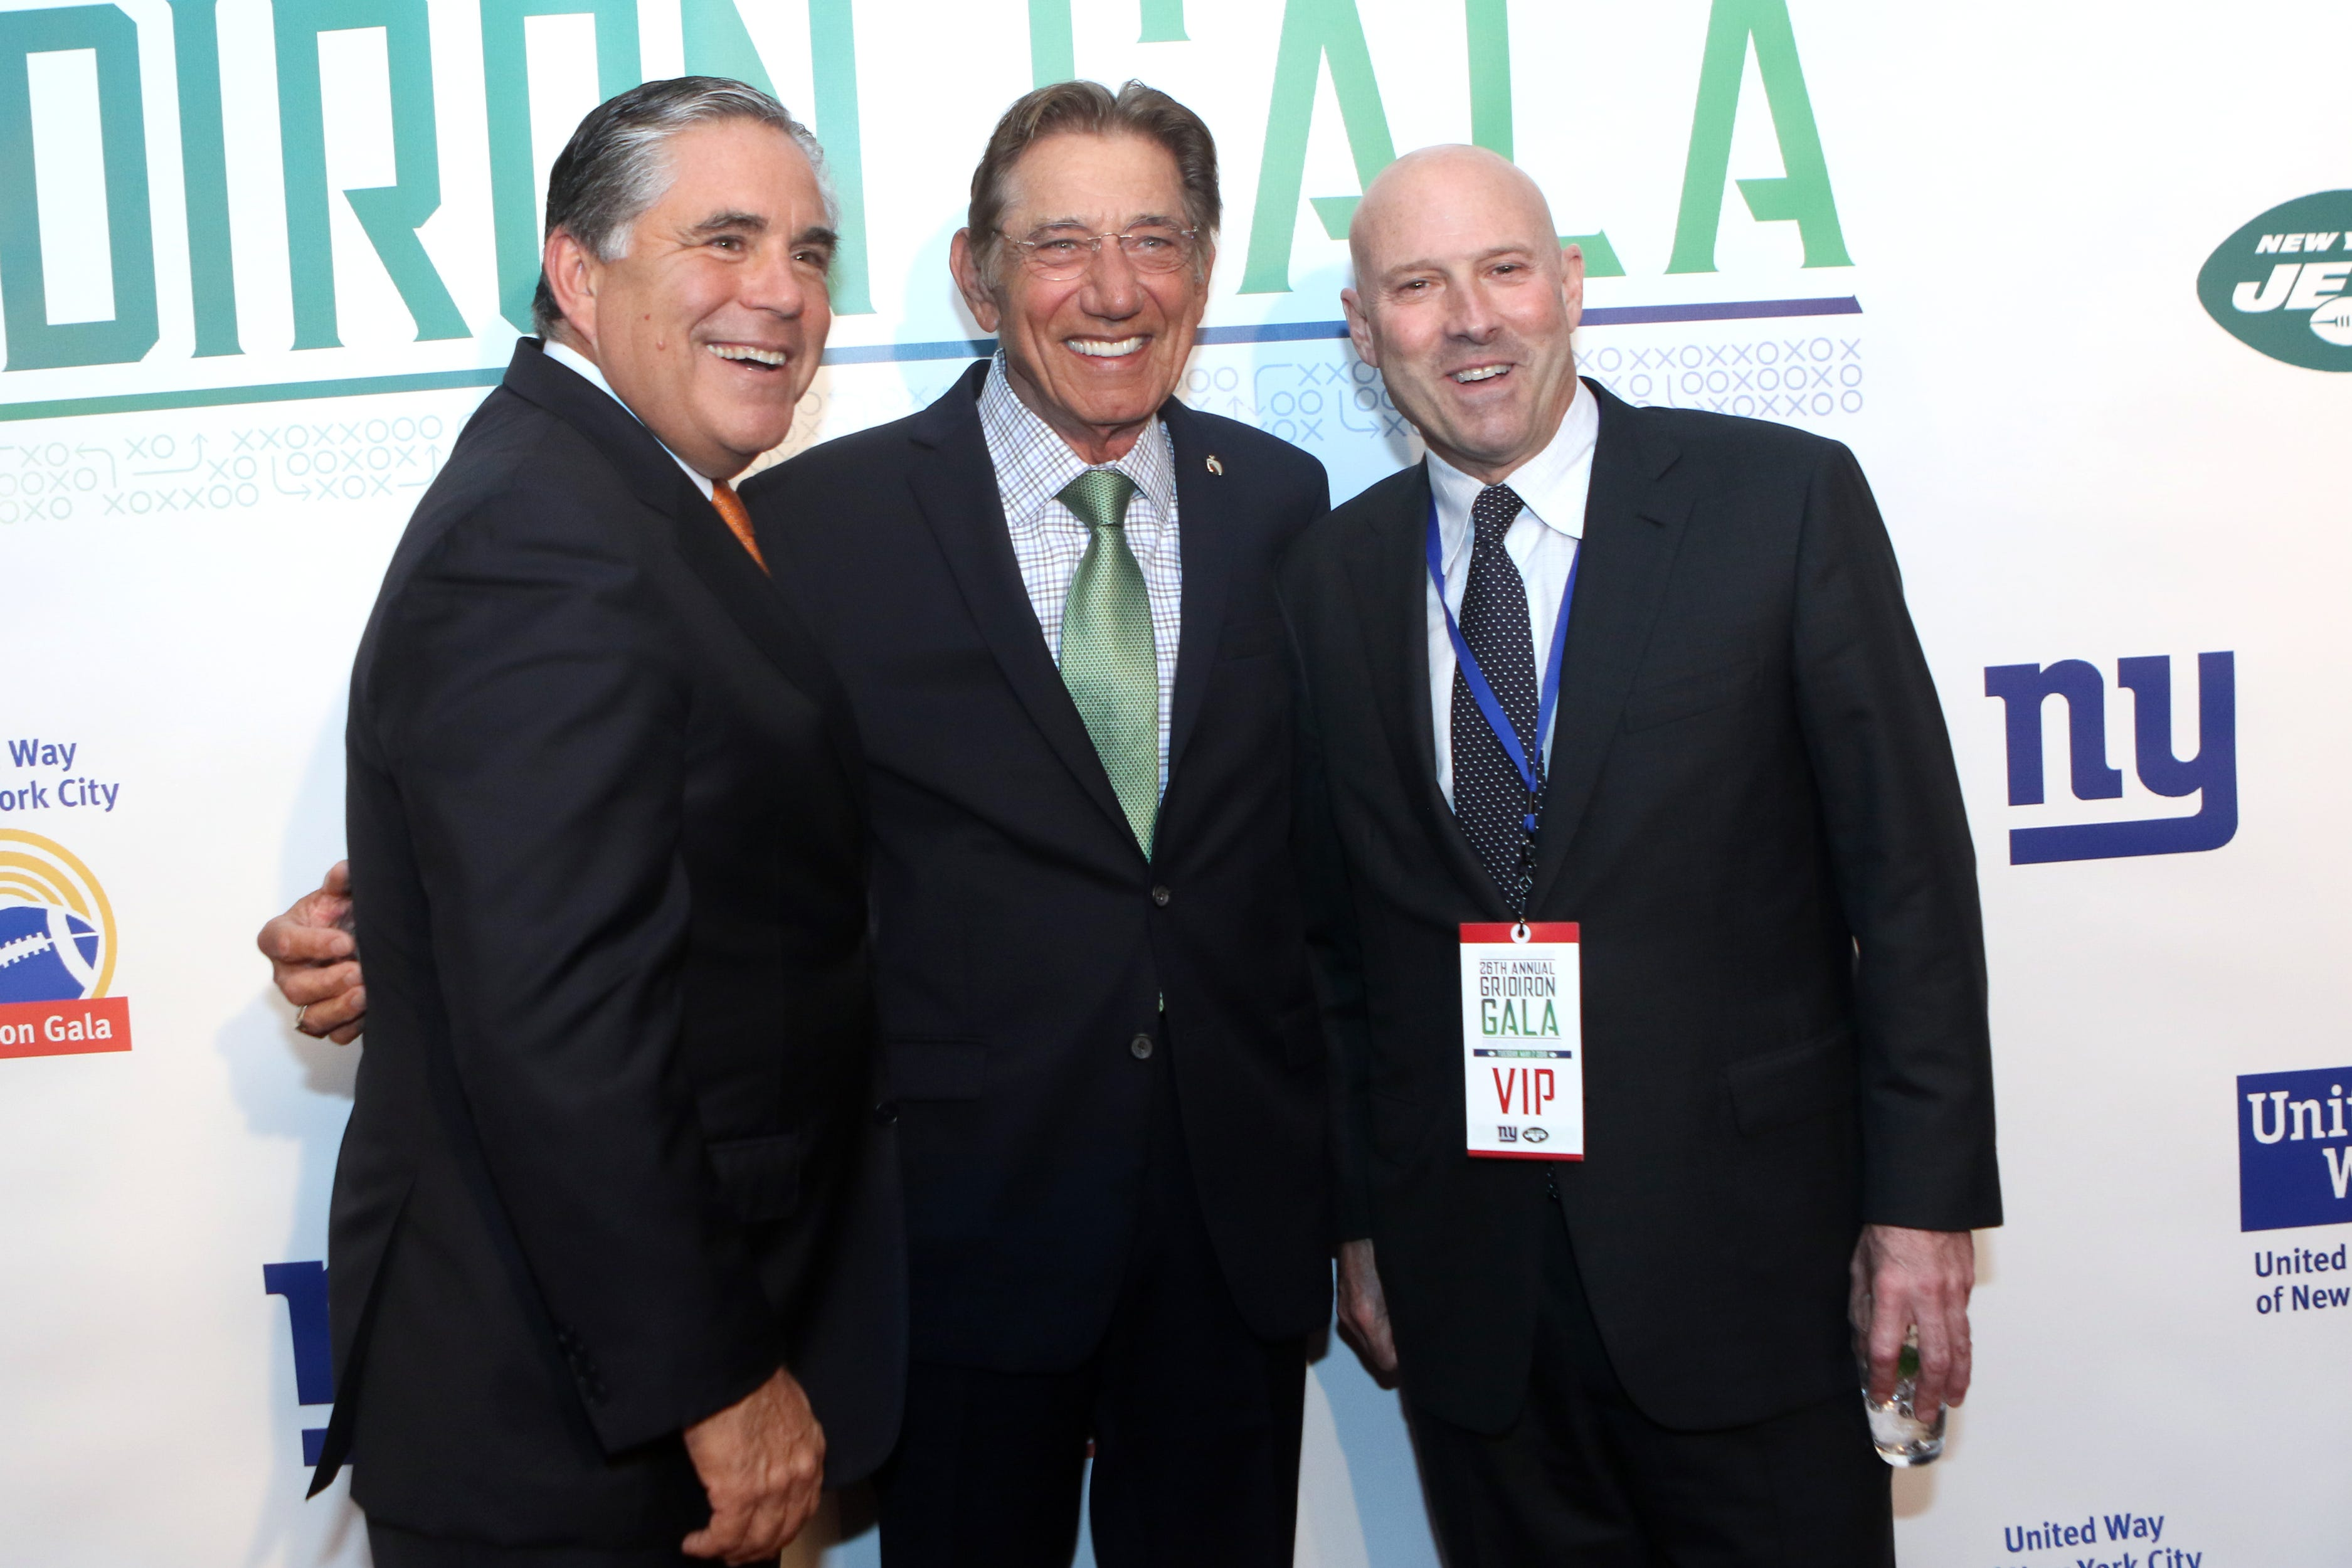 Why Joe Namath is excited about the NY Jets in 2019 with Sam Darnold and Le'Veon Bell